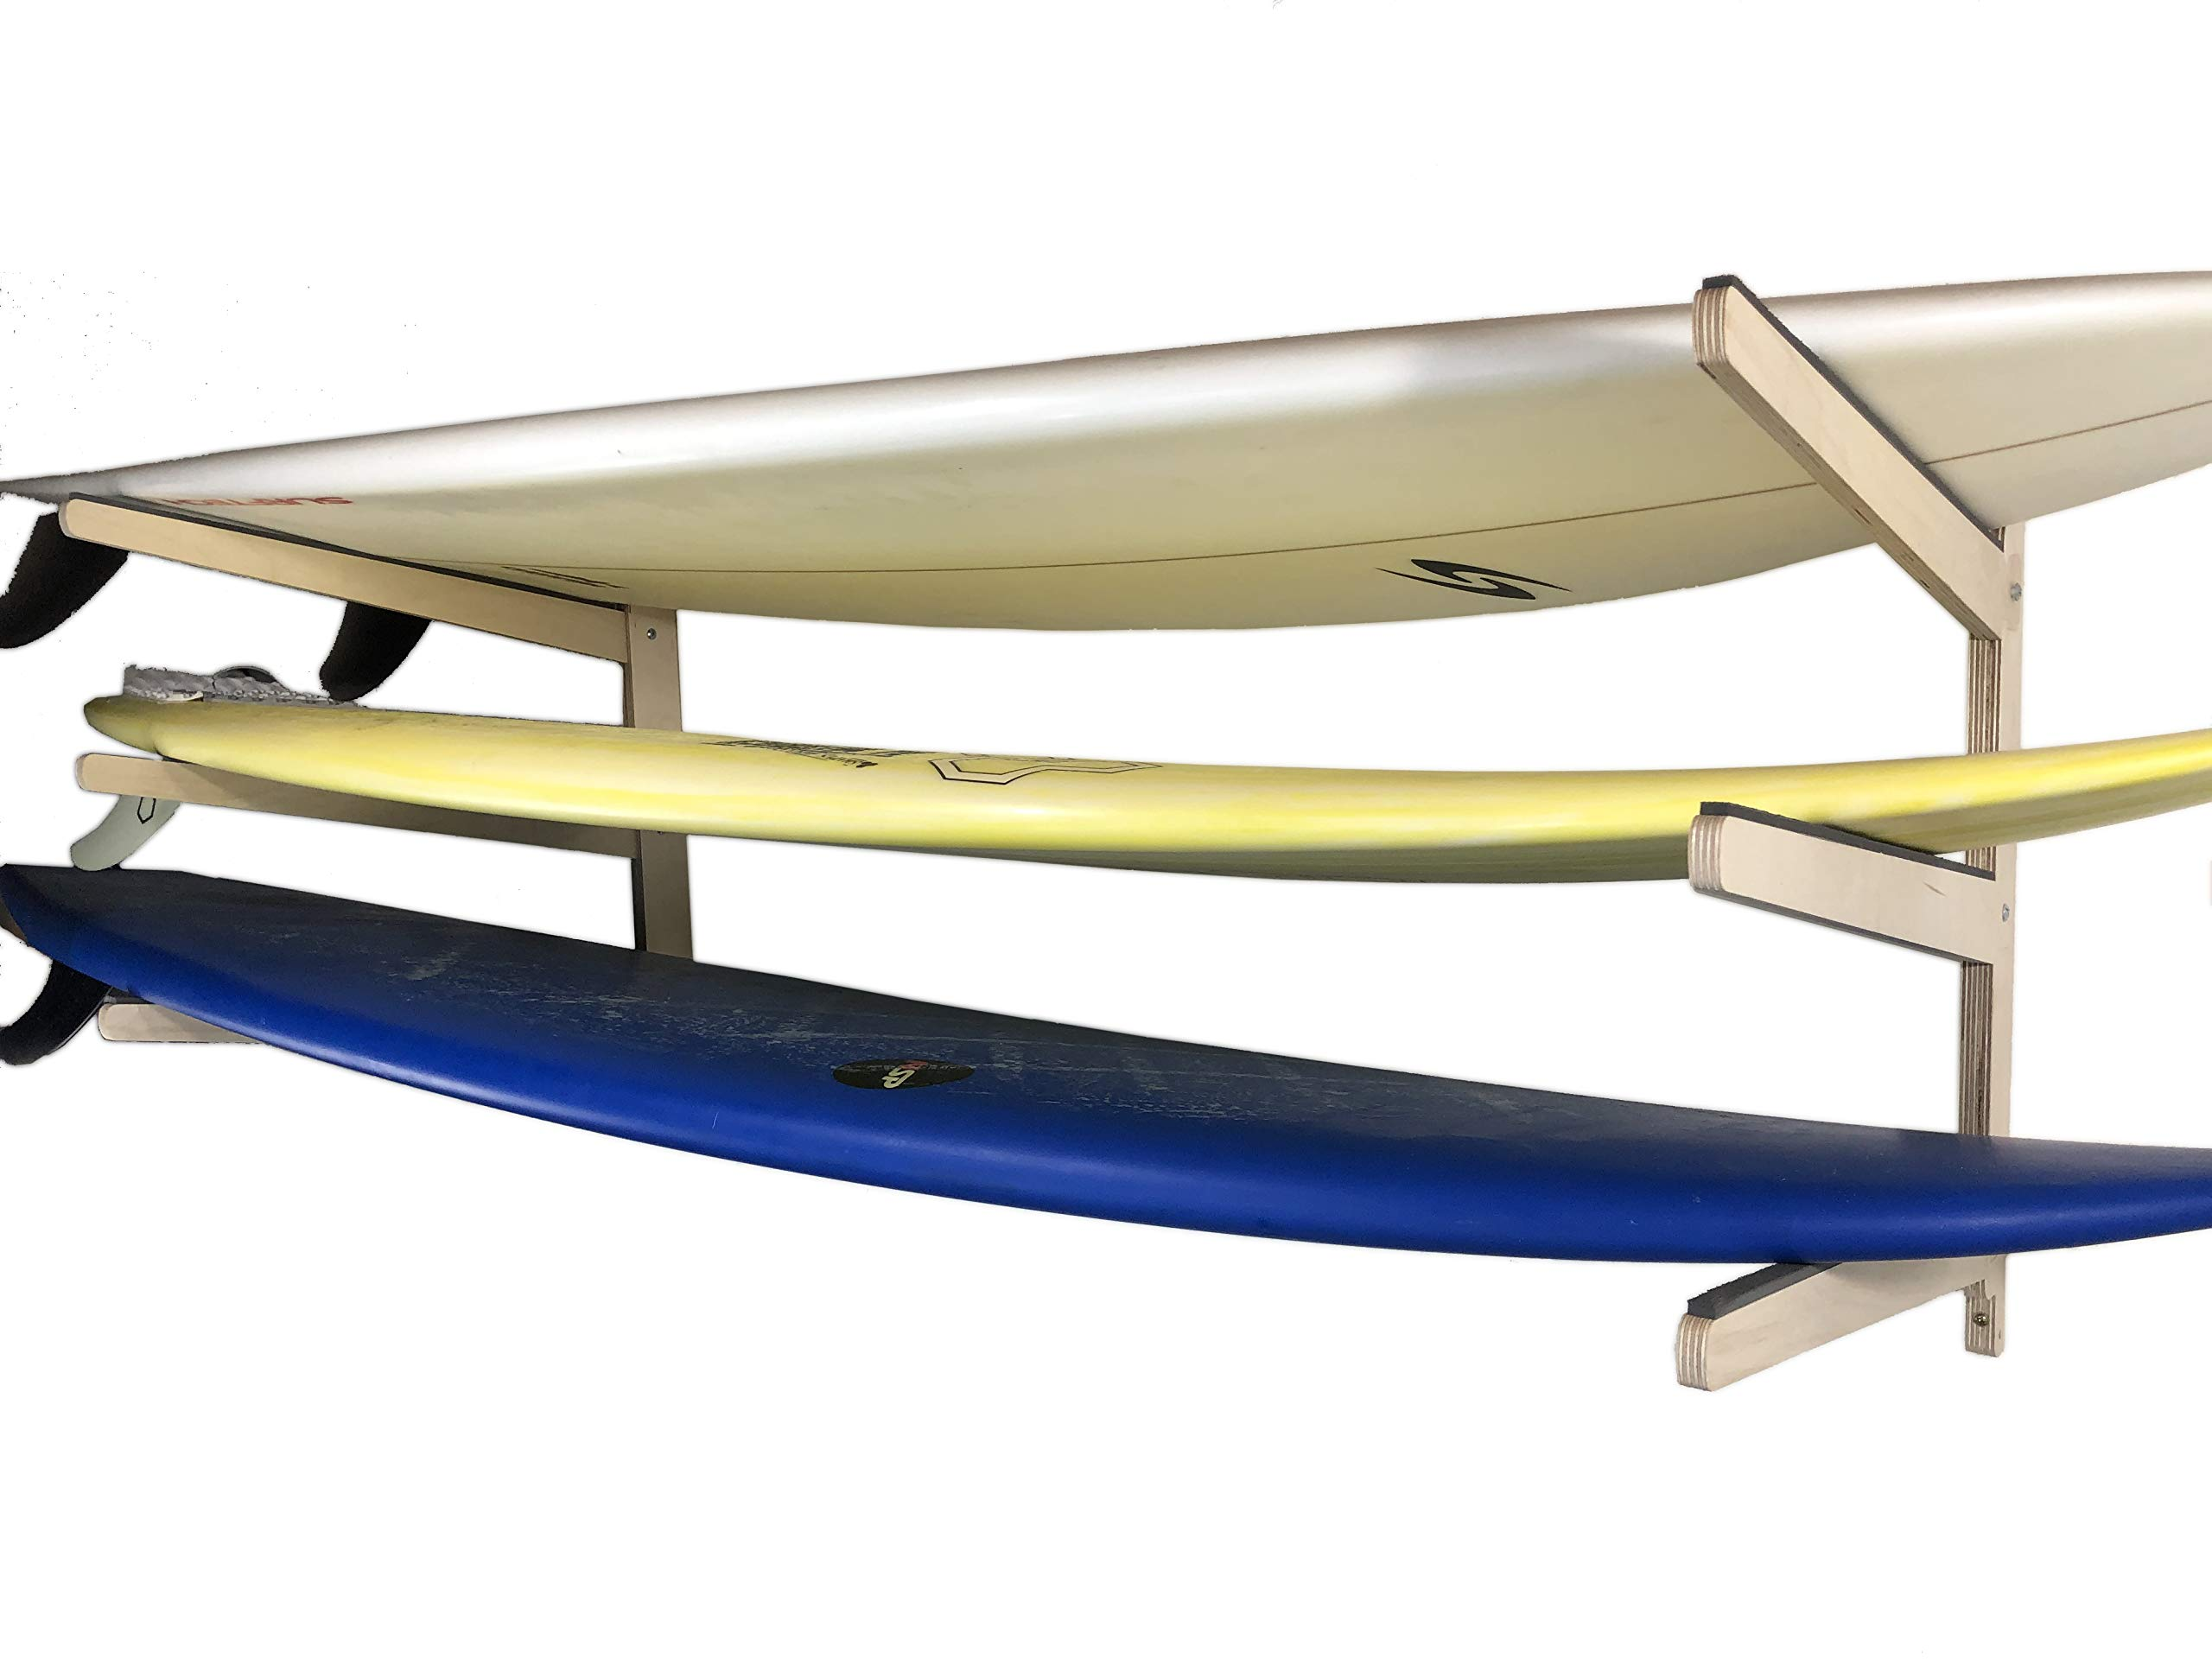 Steve's Rack Shack Premium Indoor/Outdoor Surfboard Storage Rack (Wall Mount; Holds Both Long and Short Boards; for use Indoors and Outdoors; Made in The USA) (3 Space) by Steve's Rack Shack